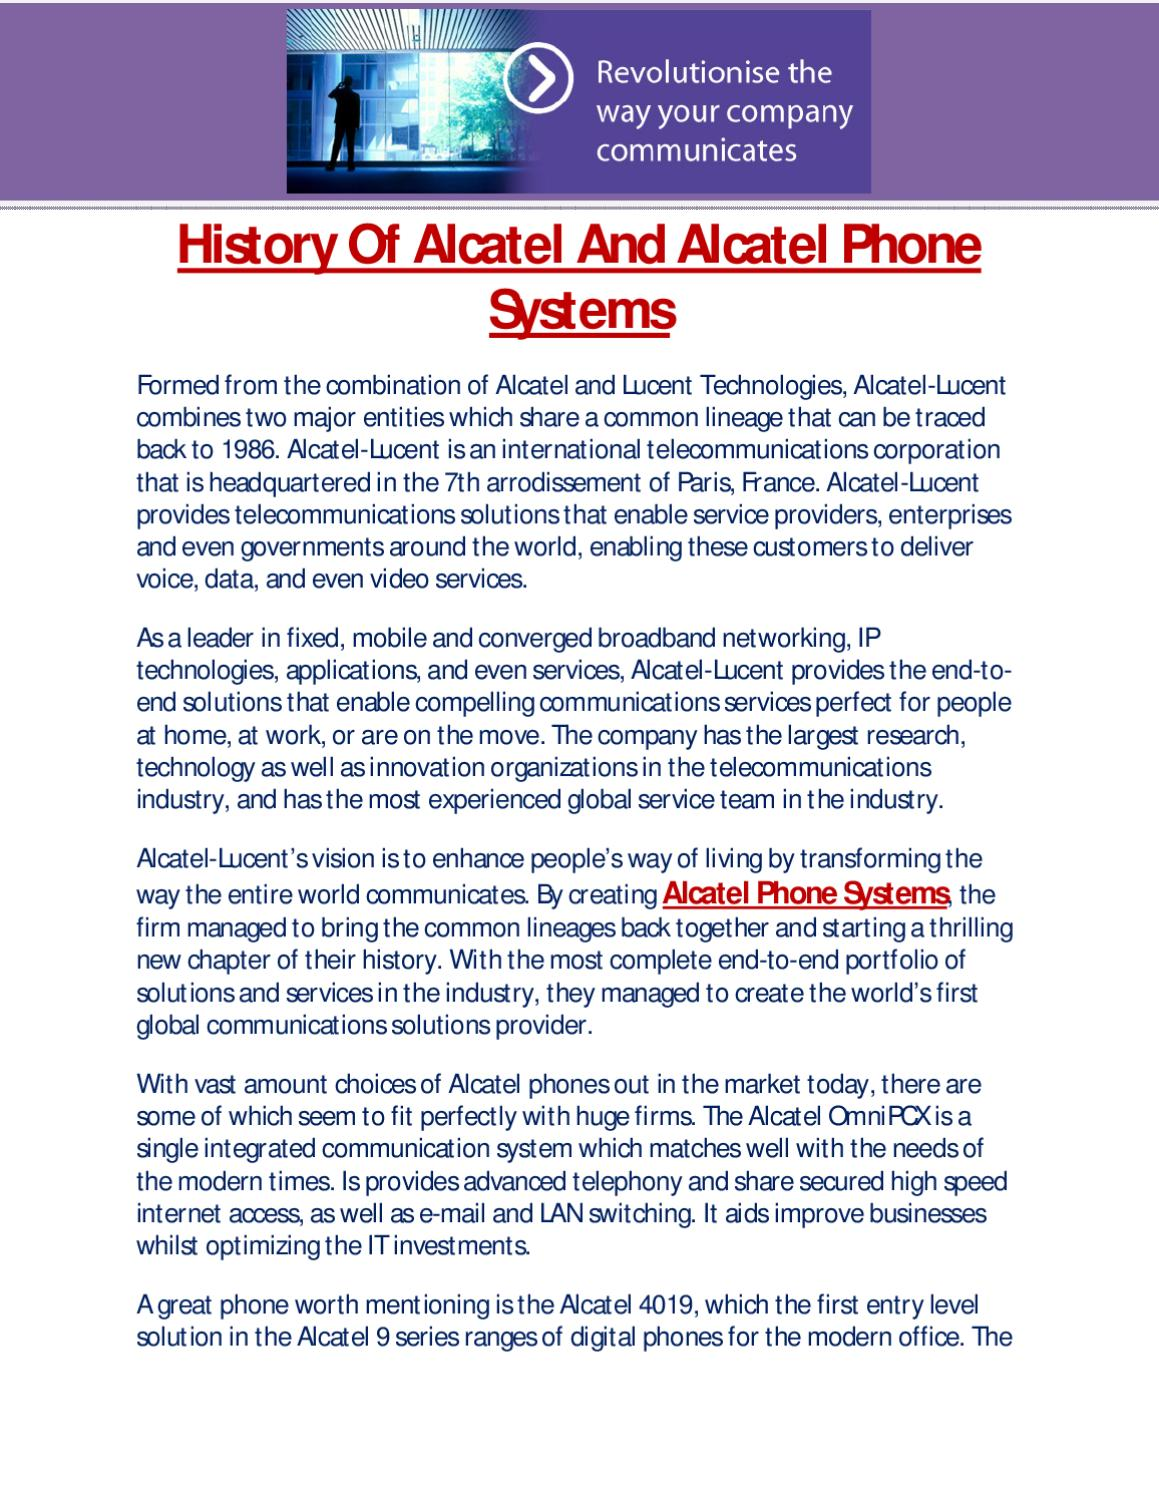 History Of Alcatel And Alcatel Phone Systems by Infiniti